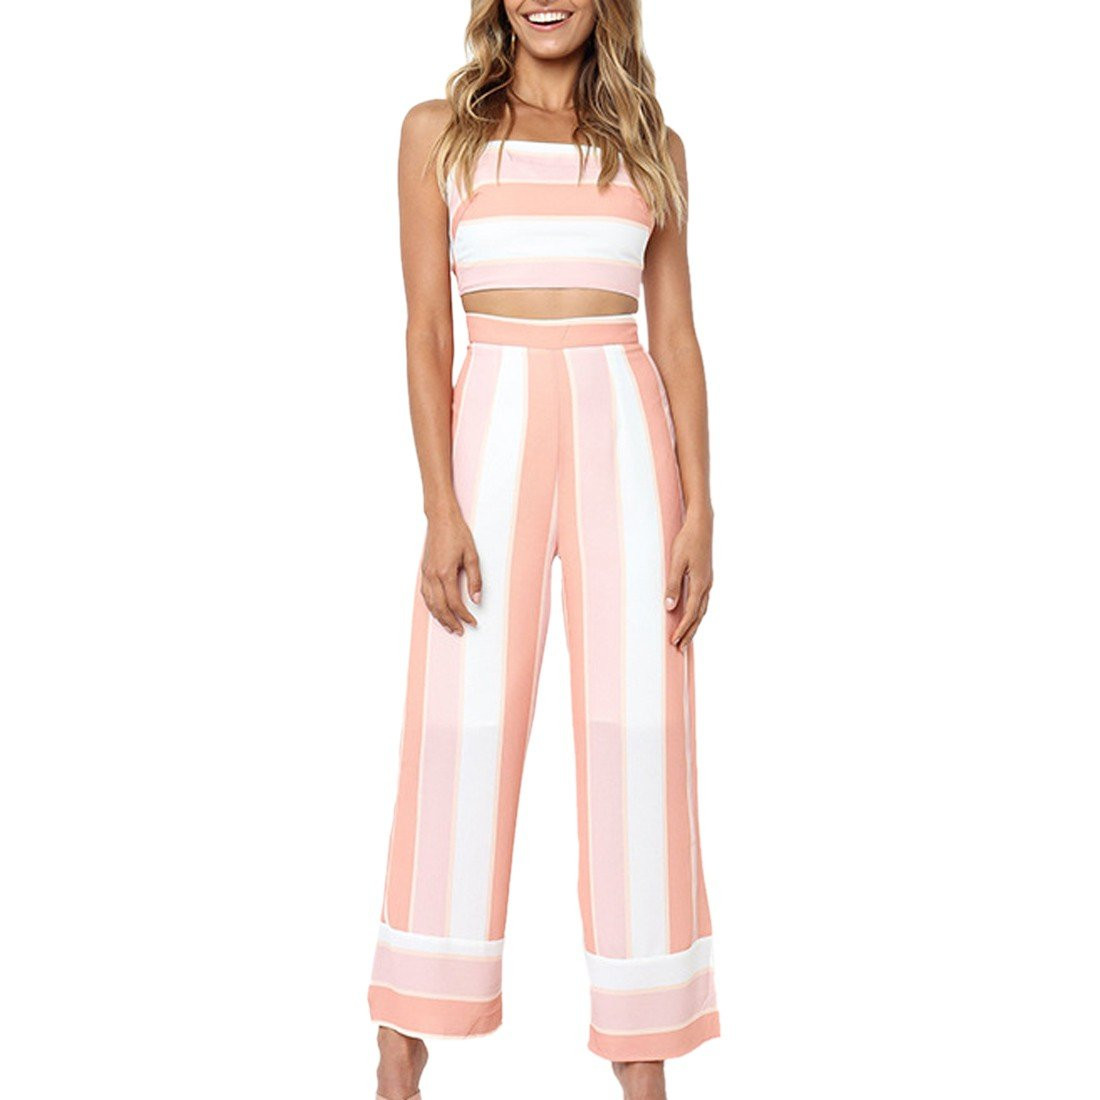 Women's Casual Wide Leg Jumpsuits Pants Two Pieces Blouse Sleeveless Top 3012S7487